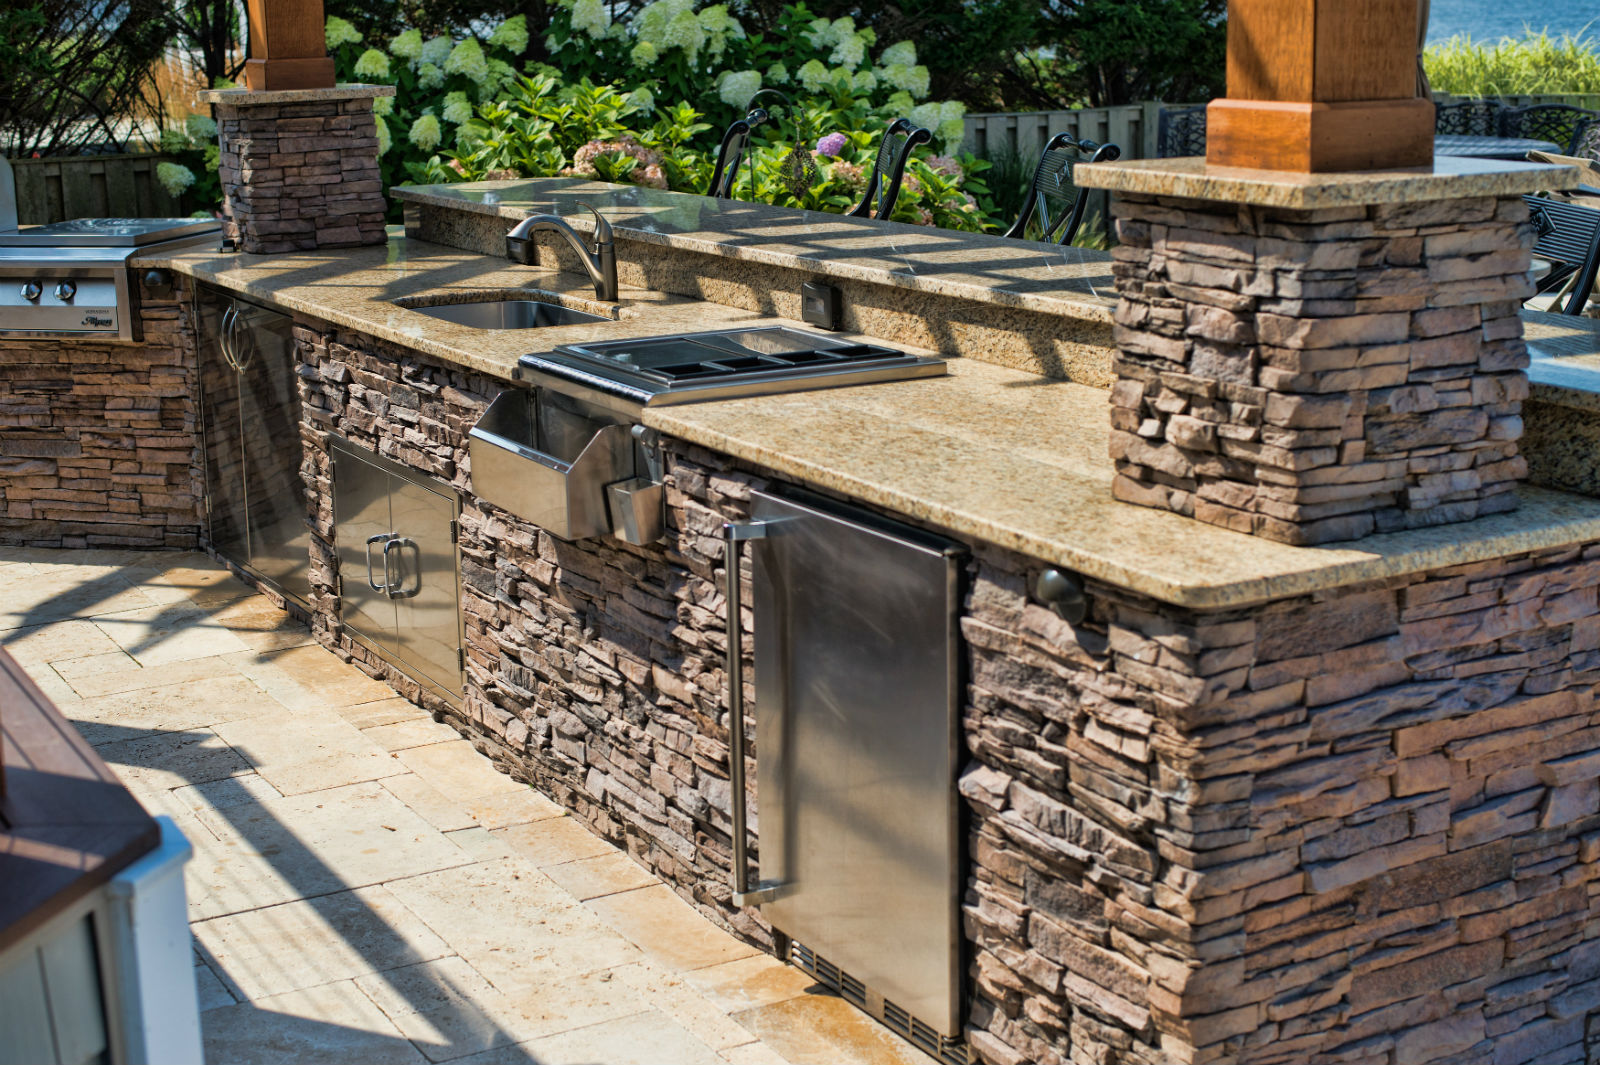 Enhance Outdoor Living Design with an Outdoor Kitchen